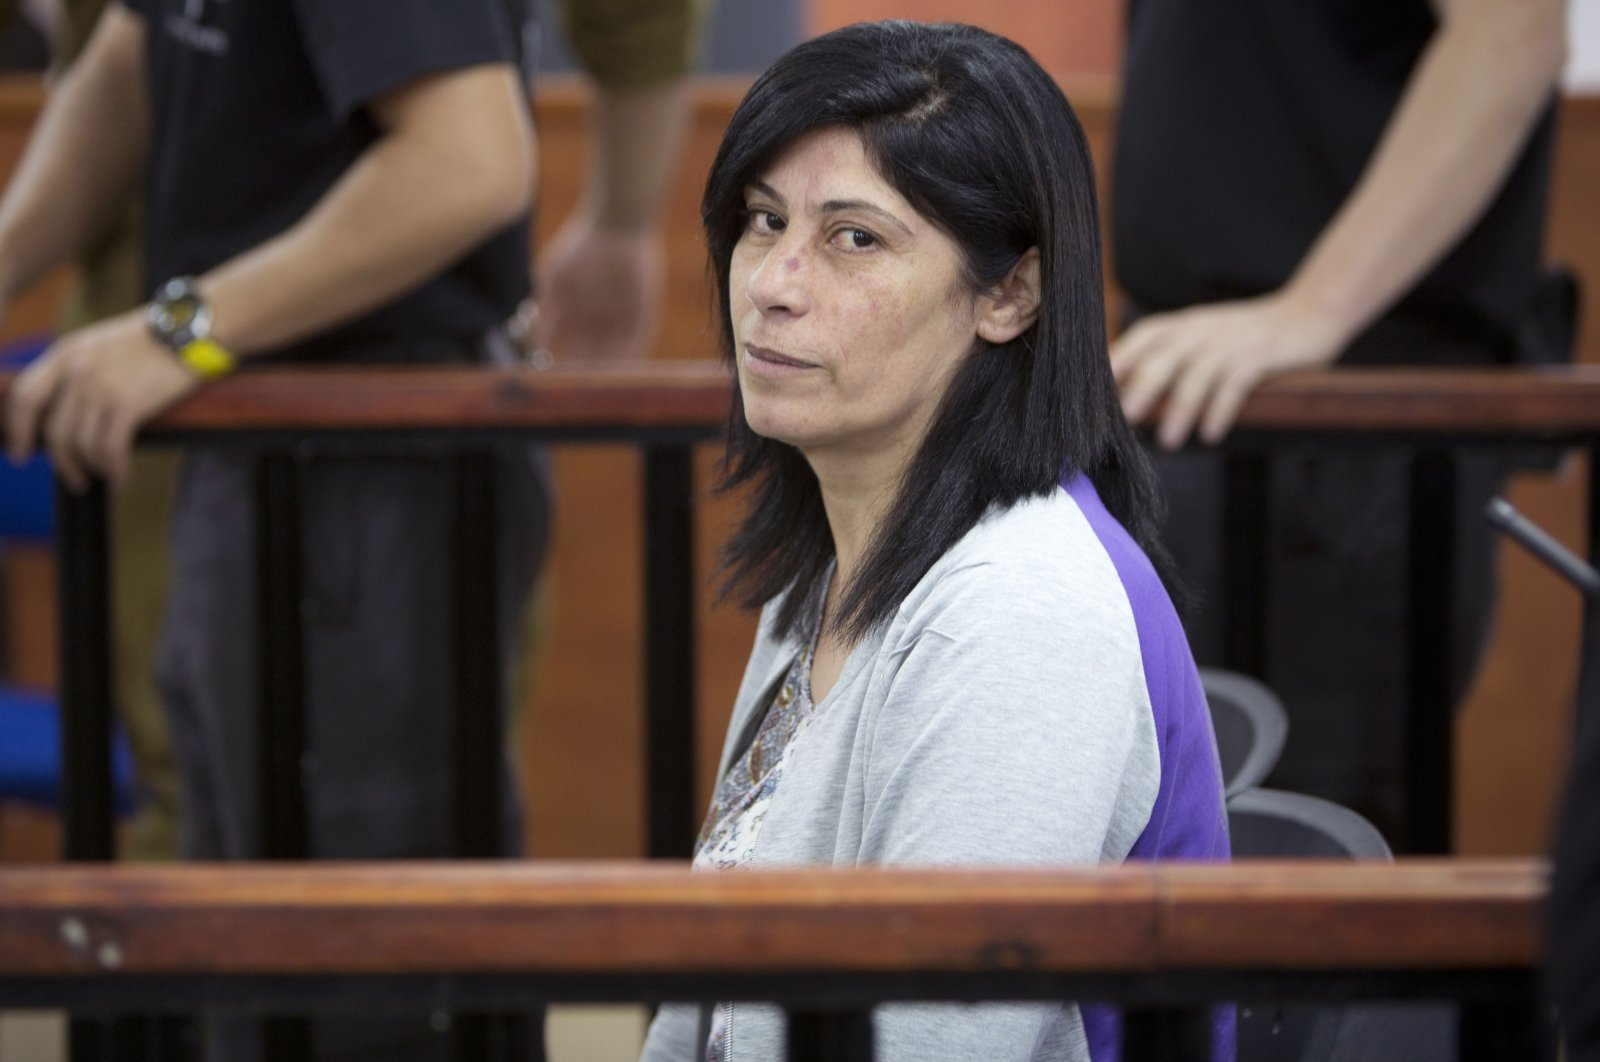 Palestinian parliamentarian Khalida Jarrar of the Popular Front for the Liberation of Palestine (PFLP) attends a court session at the Israeli Ofer military base near the West Bank city of Ramallah, Palestine, May 21, 2015. (AP Photo)